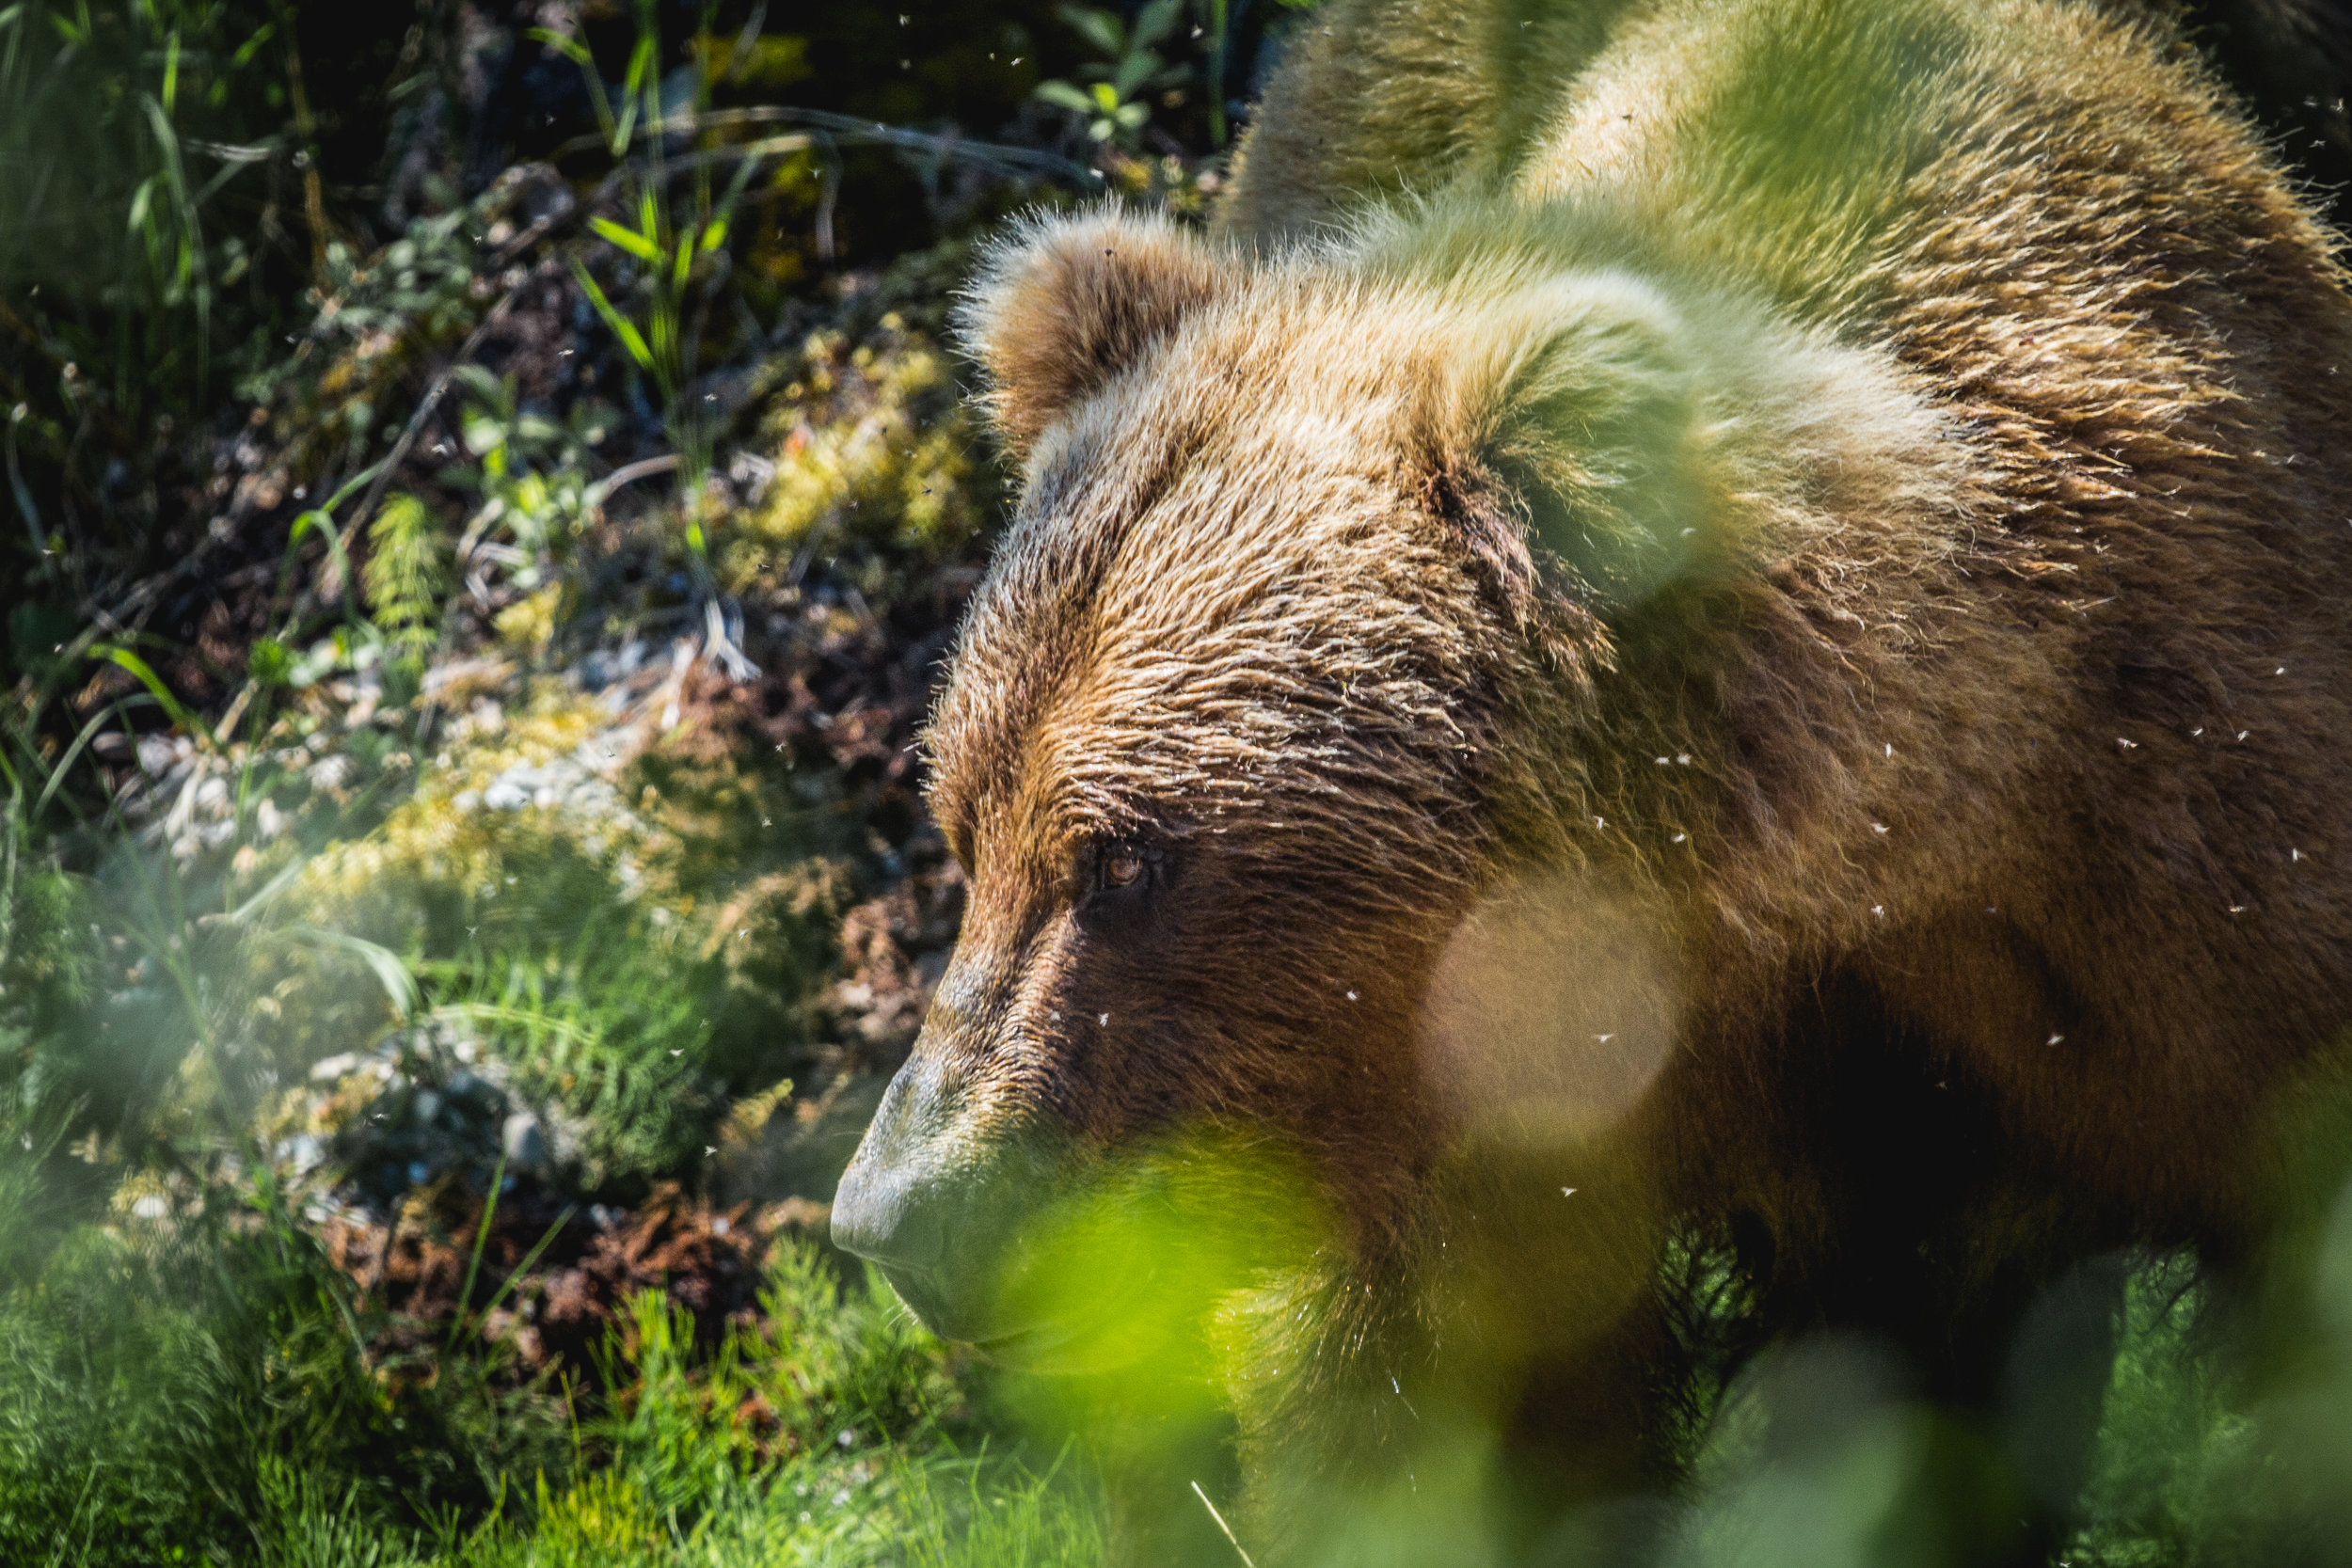 Urus Arctos, the Brown Bear,lives in areas with access to marine resources. In this case, migrating salmon.Grizzly Bears are a subspecies of Brown Bears that live in the interior of a continent.